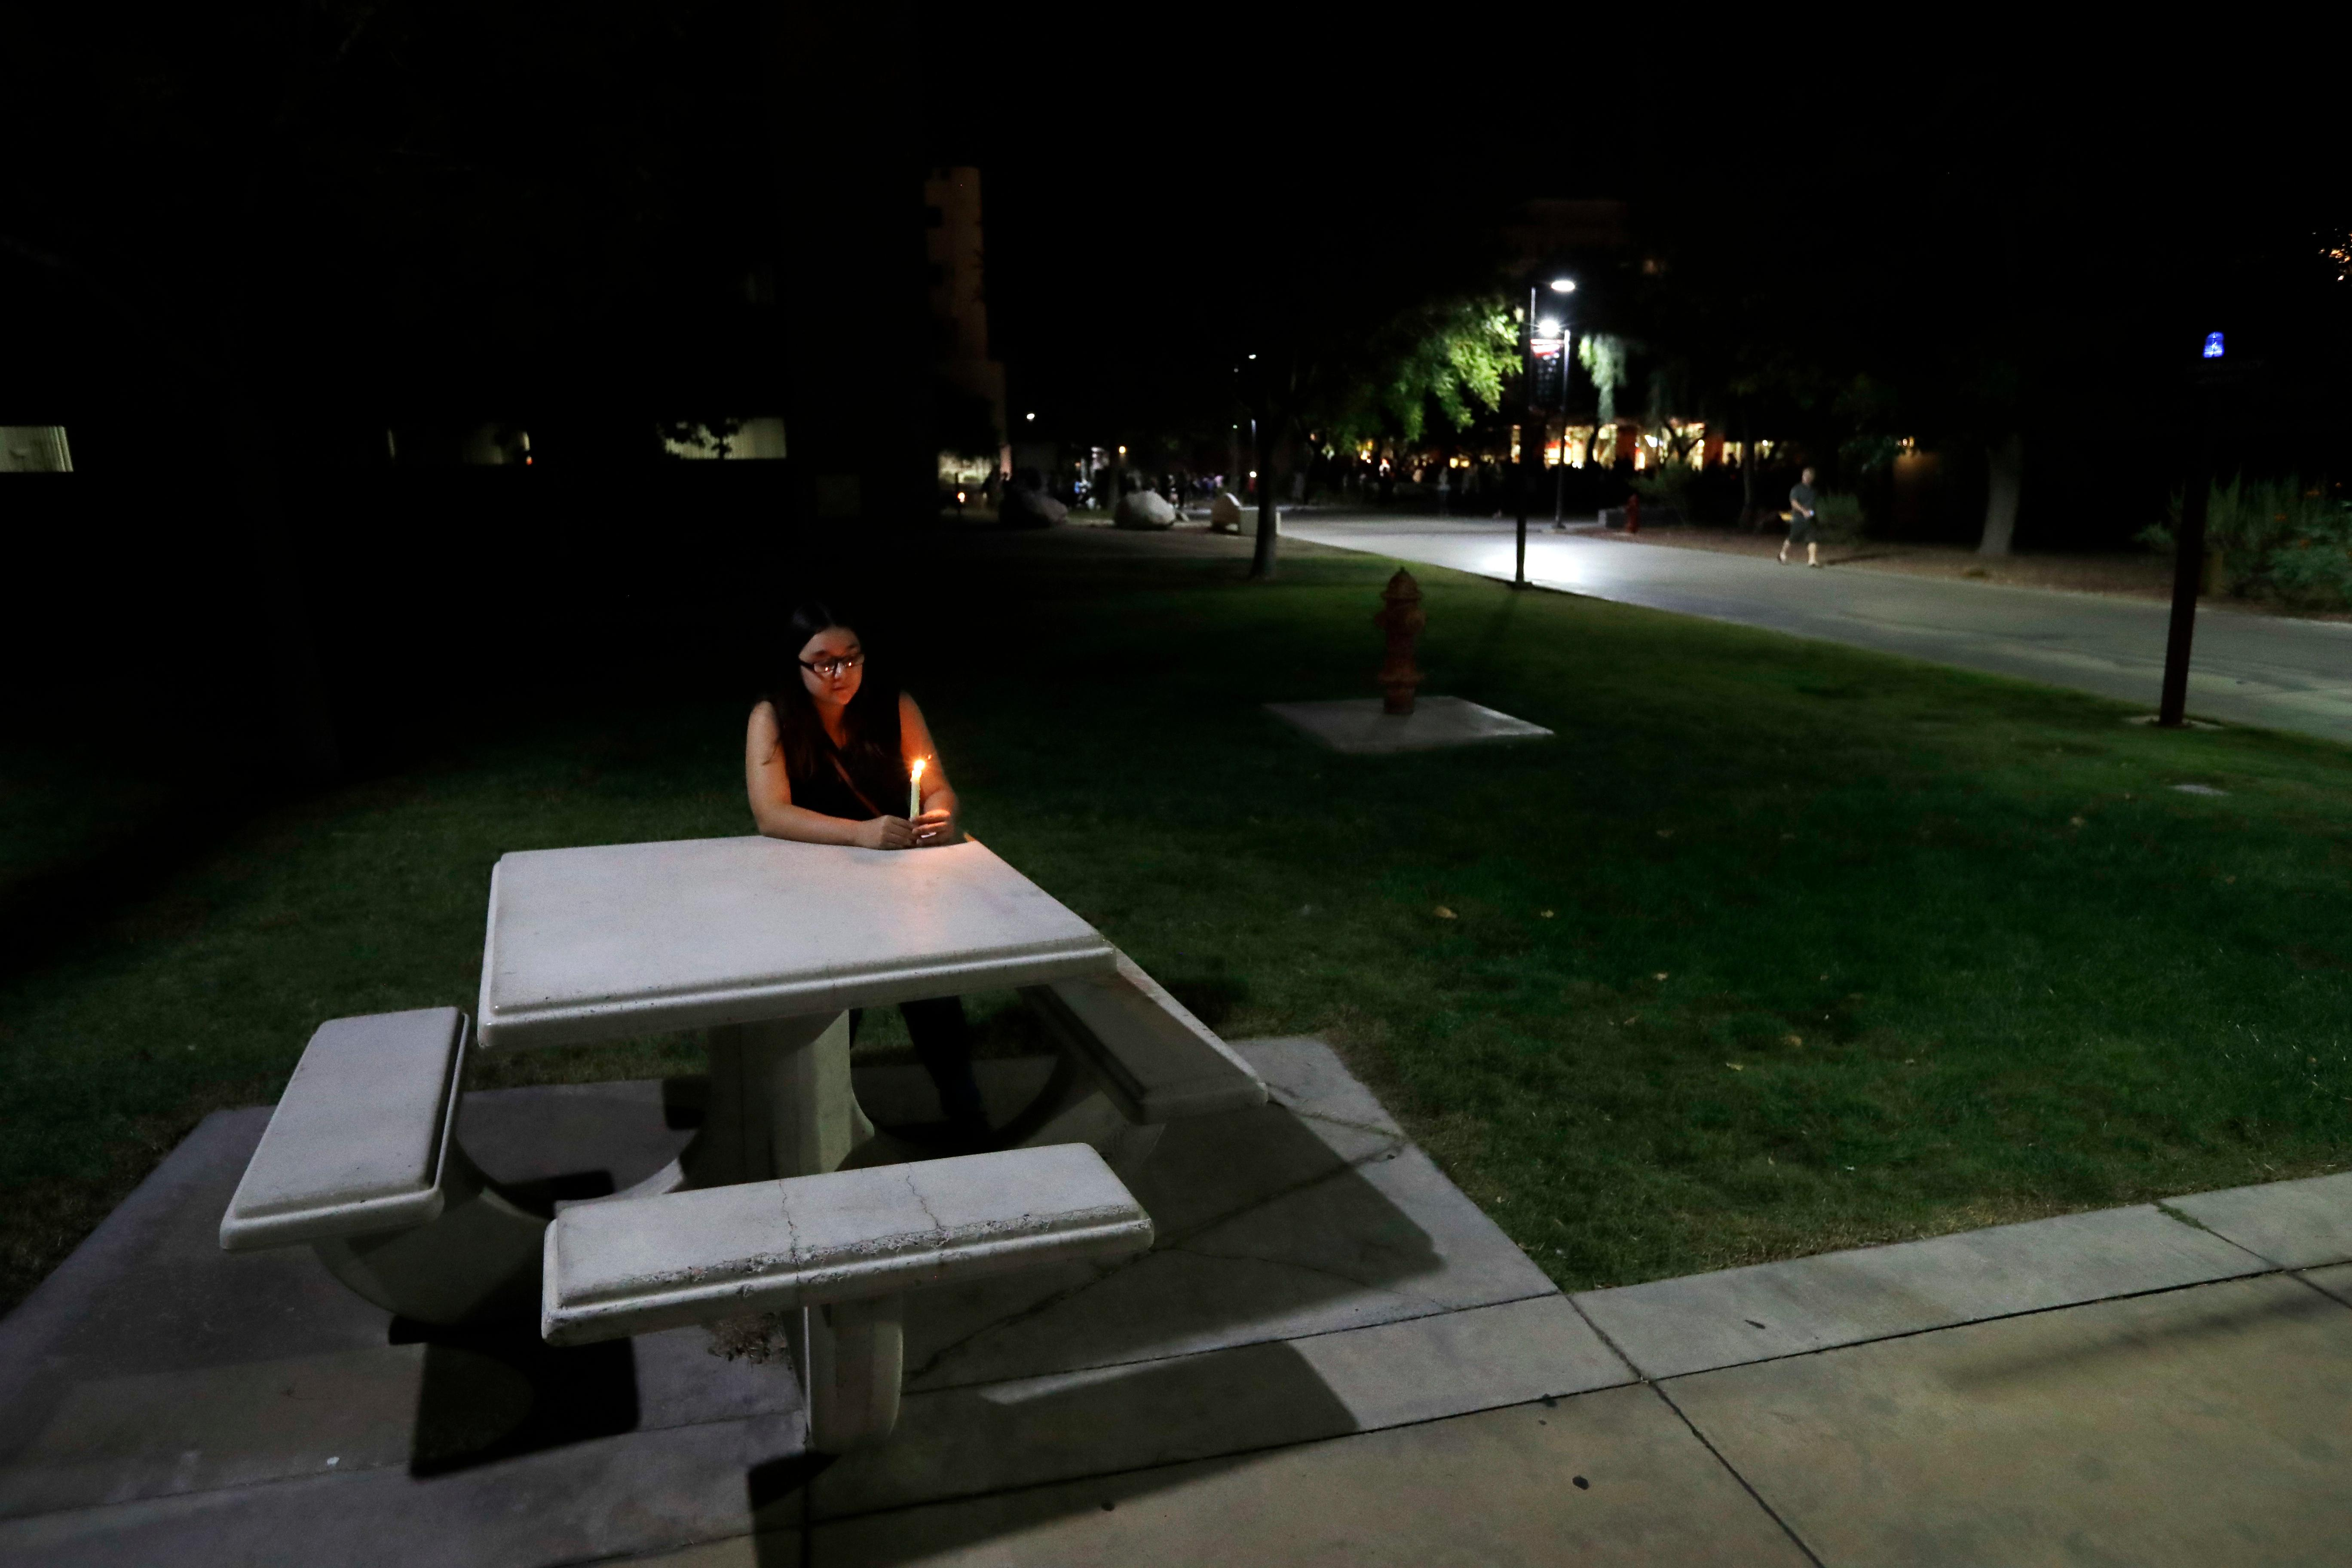 University of Nevada Las Vegas student Johanna Munoz sits at a table with a candle during a vigil Monday, Oct. 2, 2017, in Las Vegas. A gunman on the 32nd floor of the Mandalay Bay casino hotel rained automatic weapons fire down on the crowd of over 22,000 at an outdoor country music festival Sunday. (AP Photo/Gregory Bull)